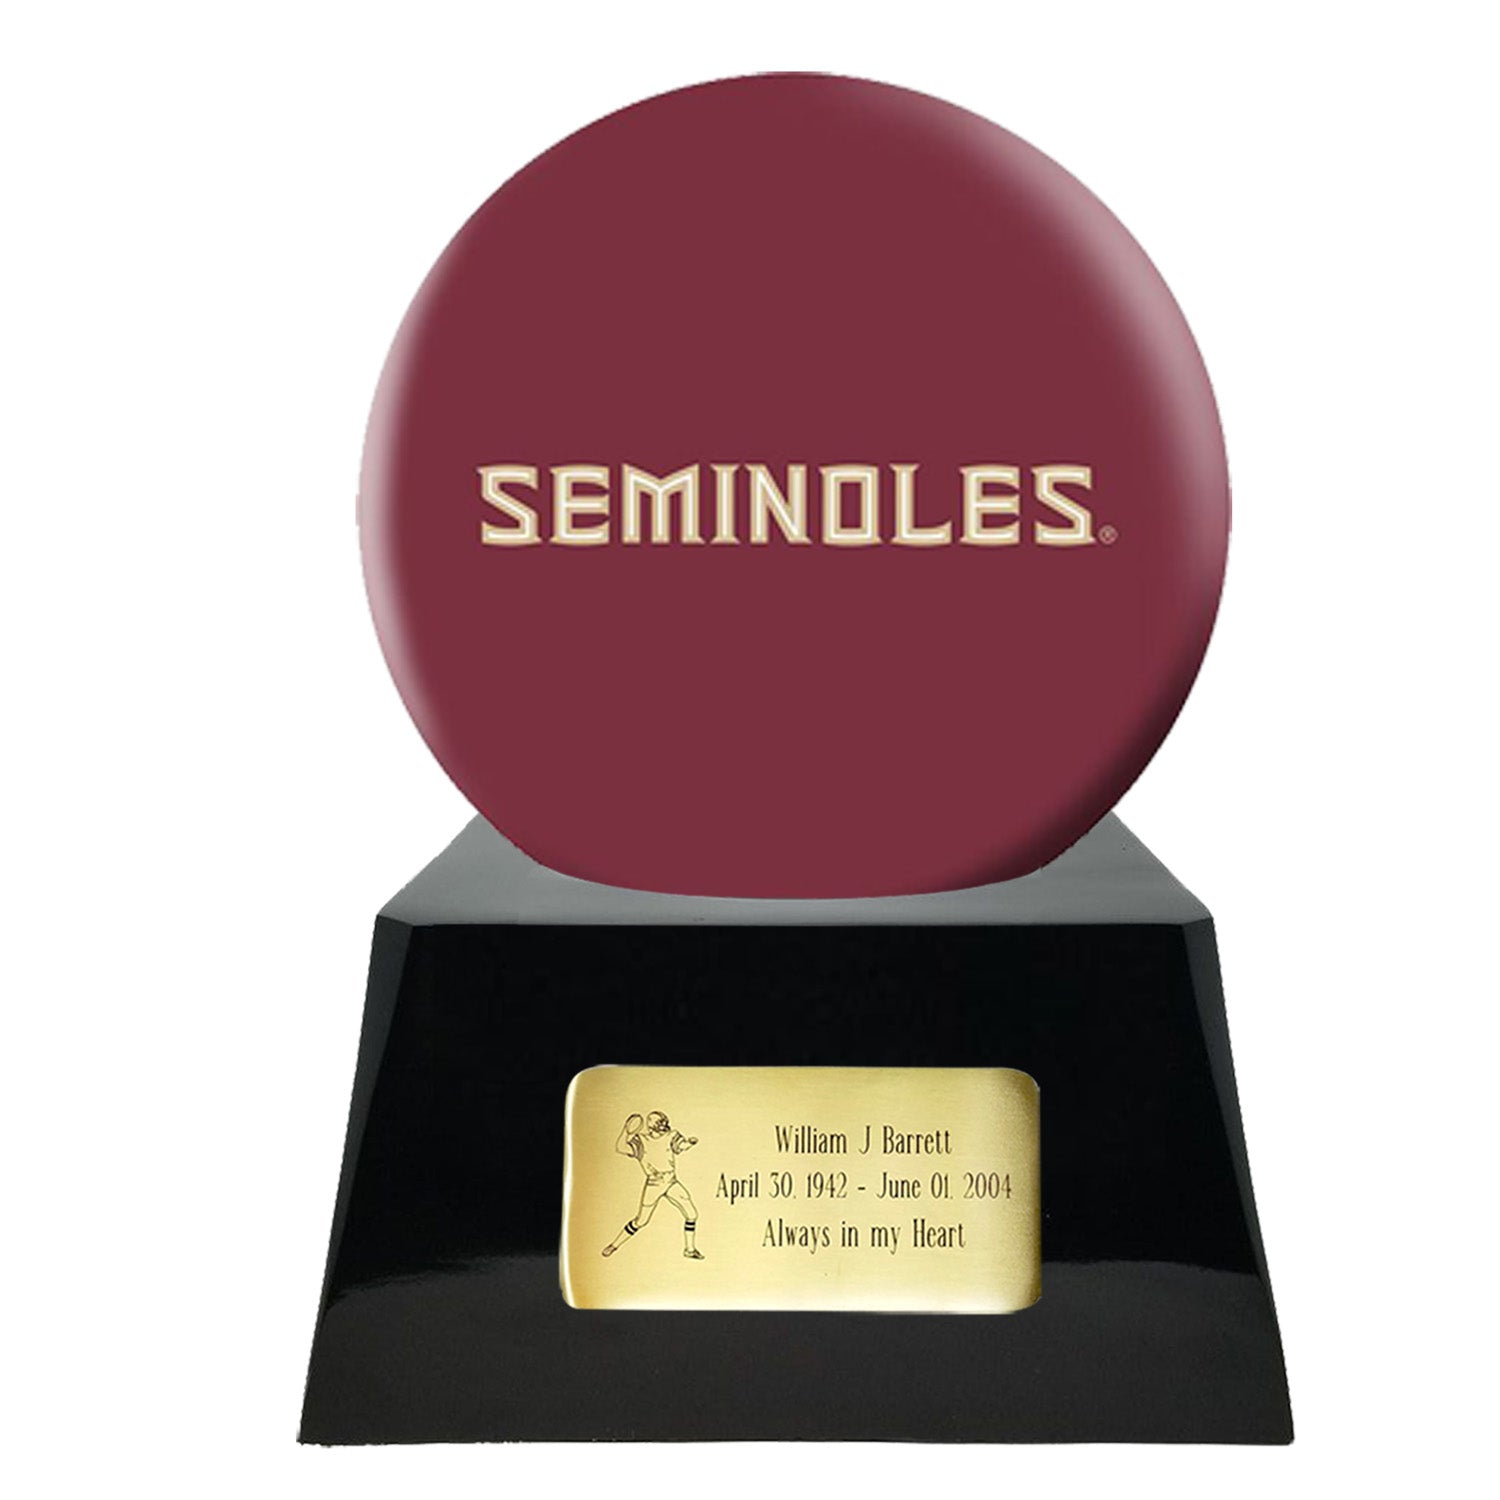 Football Urn - Florida State University Seminoles Ball Decor with Custom Metal Plaque Football Cremation Urn for Human Ashes - NFL URN - Memorials4u